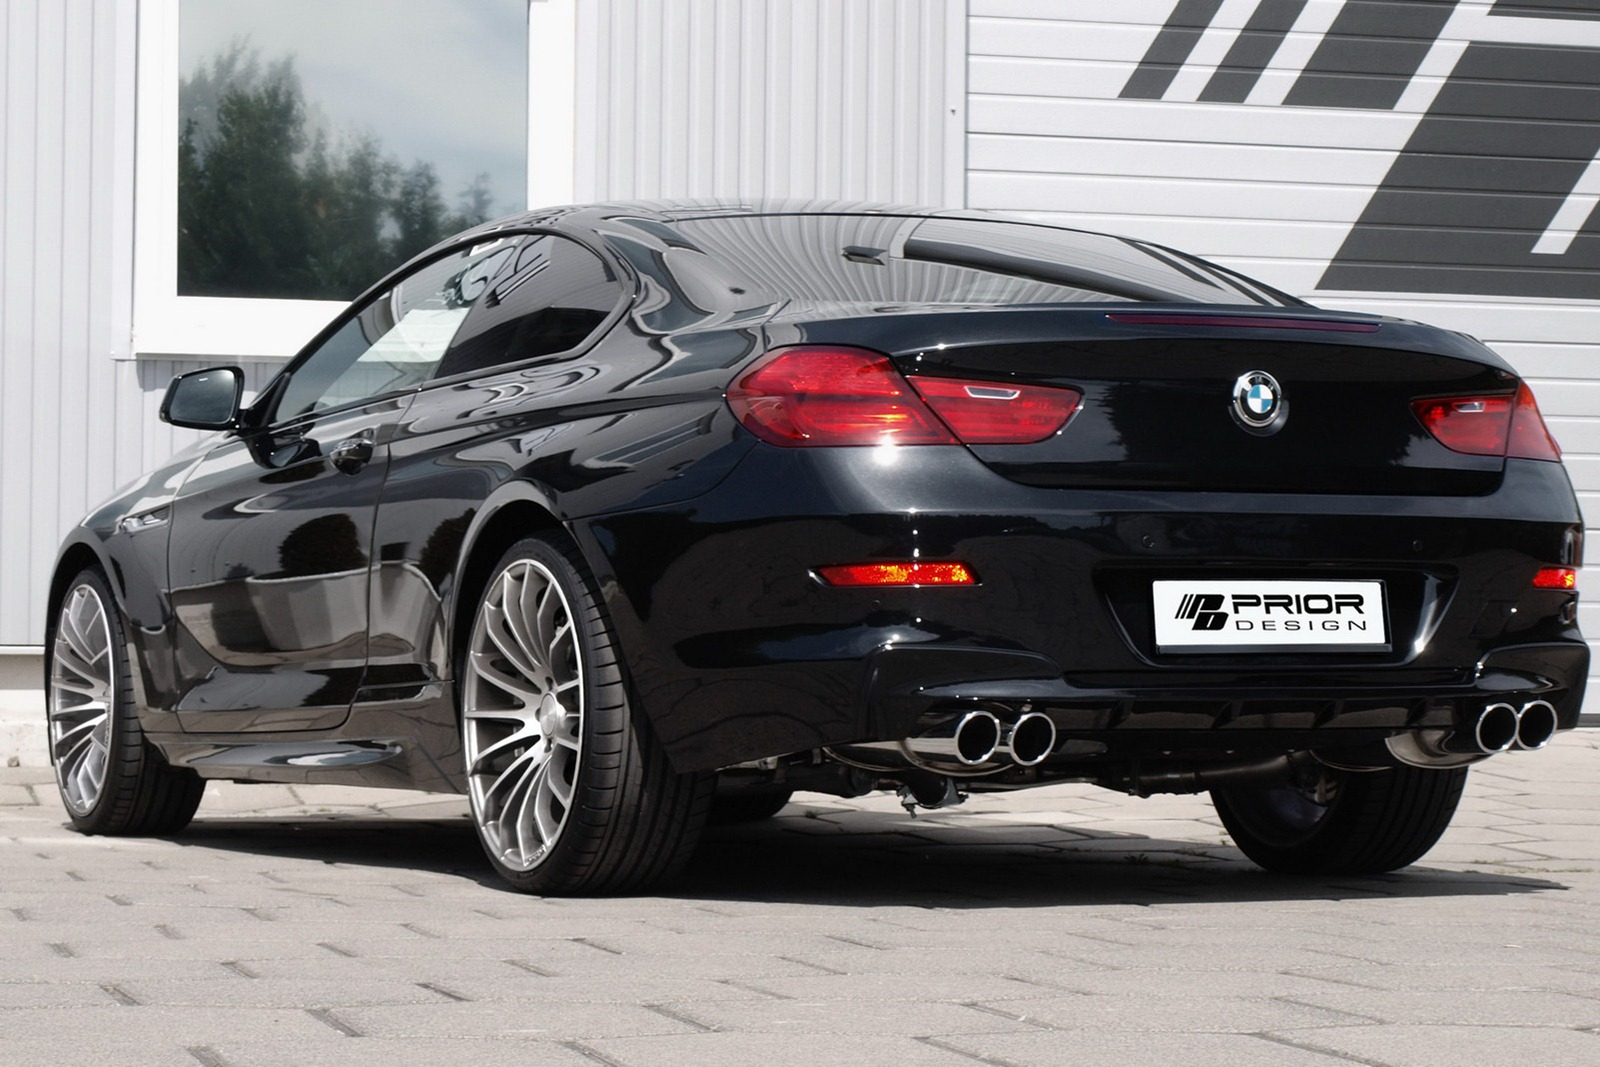 BMW 6 Series Tuned By Prior Design Photo Gallery Wallpaper For Android